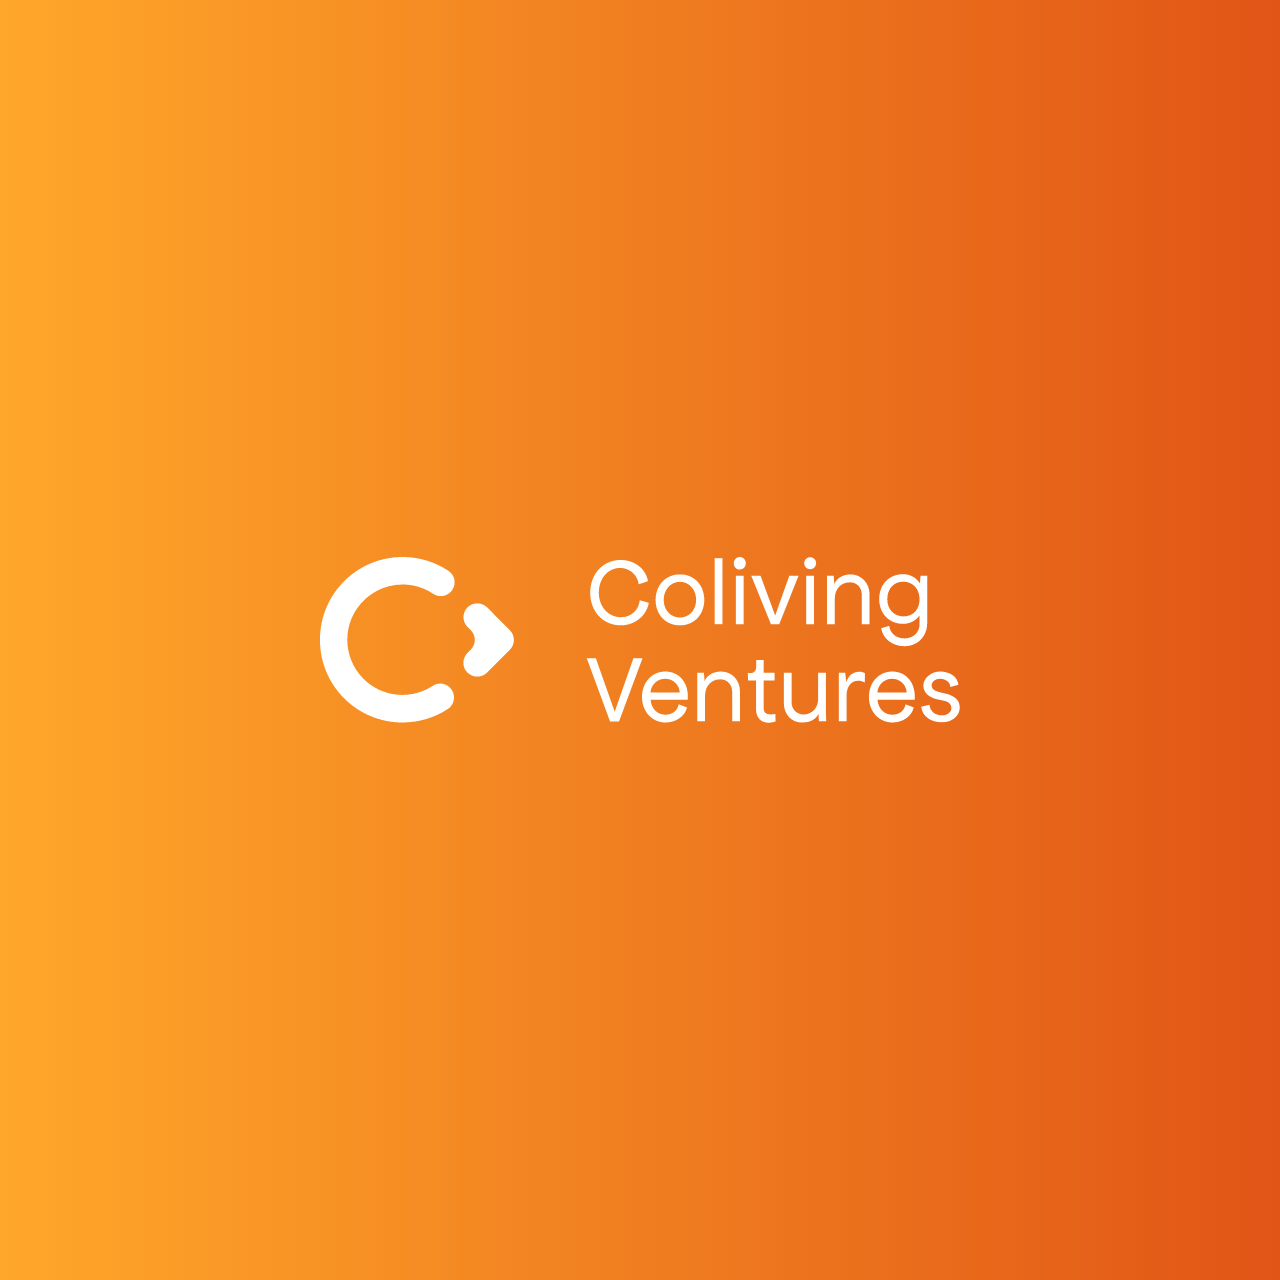 Coliving Ventures White logotype with orange background by SPX Studio